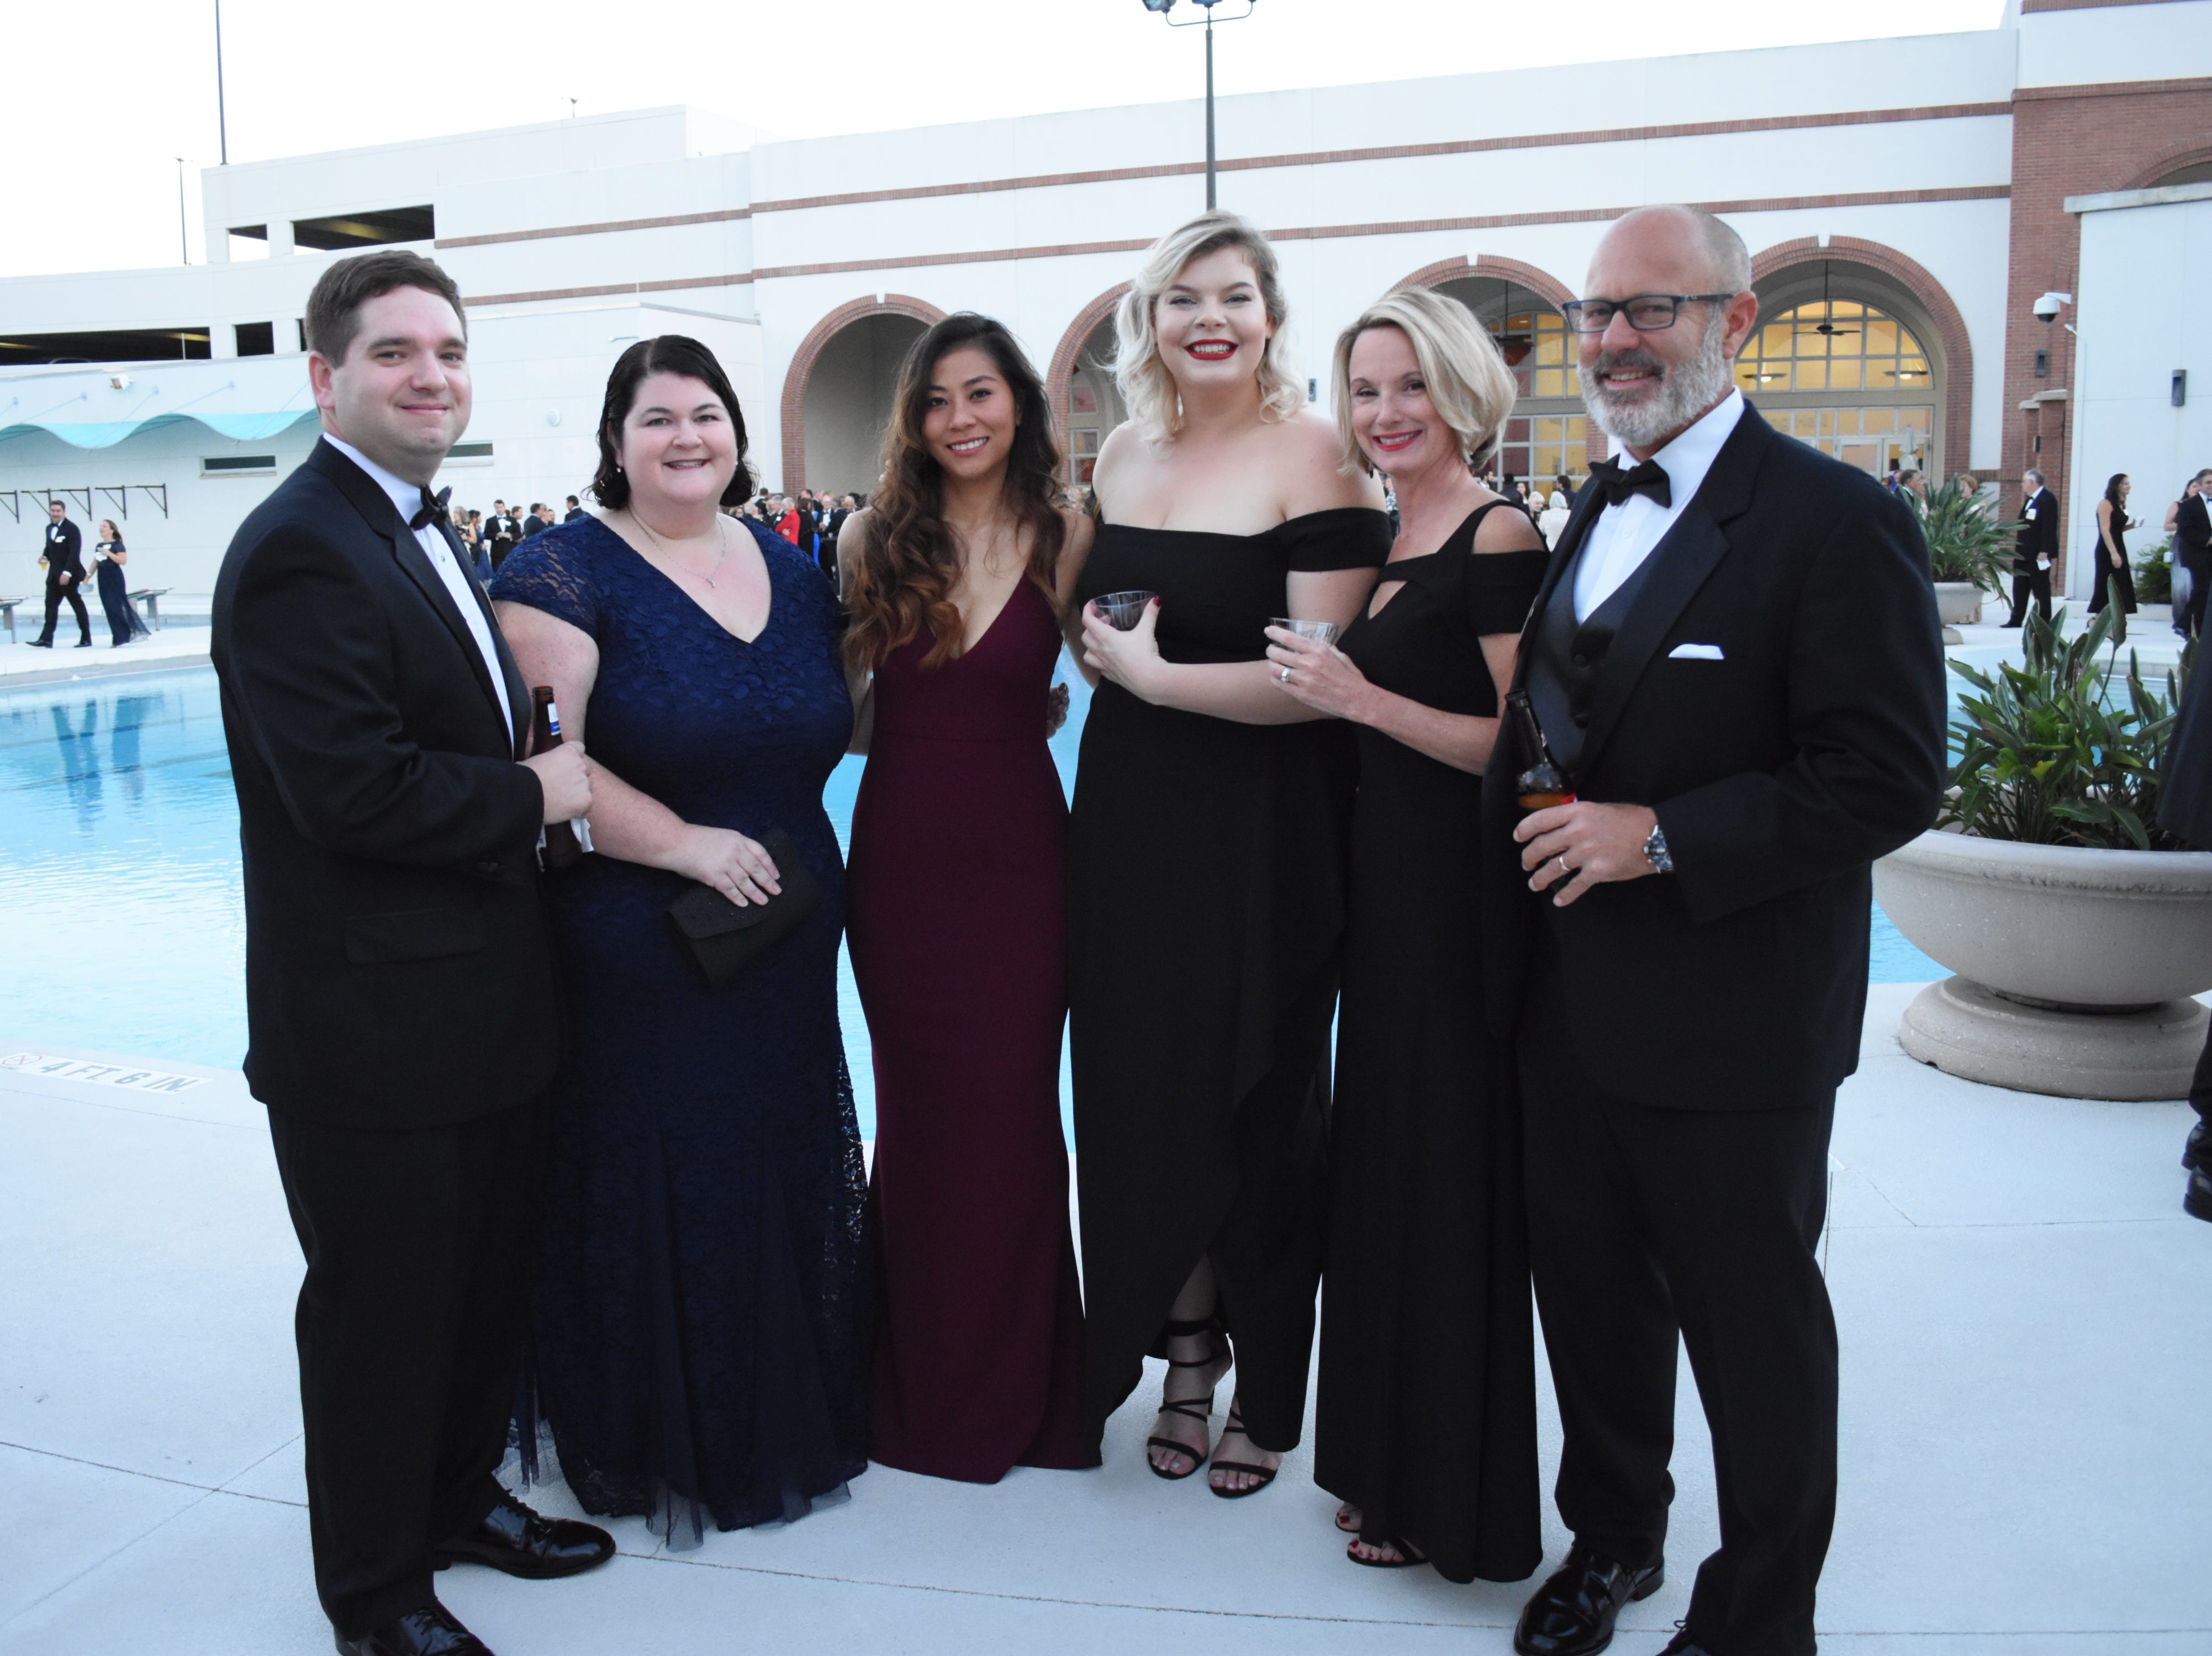 Nim Robinson, Emma Sandell, Erik Juliano, Sandy Petersen and Andrew Petersen pose for a photo at Florida Tech's 60th Anniversary Homecoming Gala Oct. 13, 2018, at the Clemente Center.